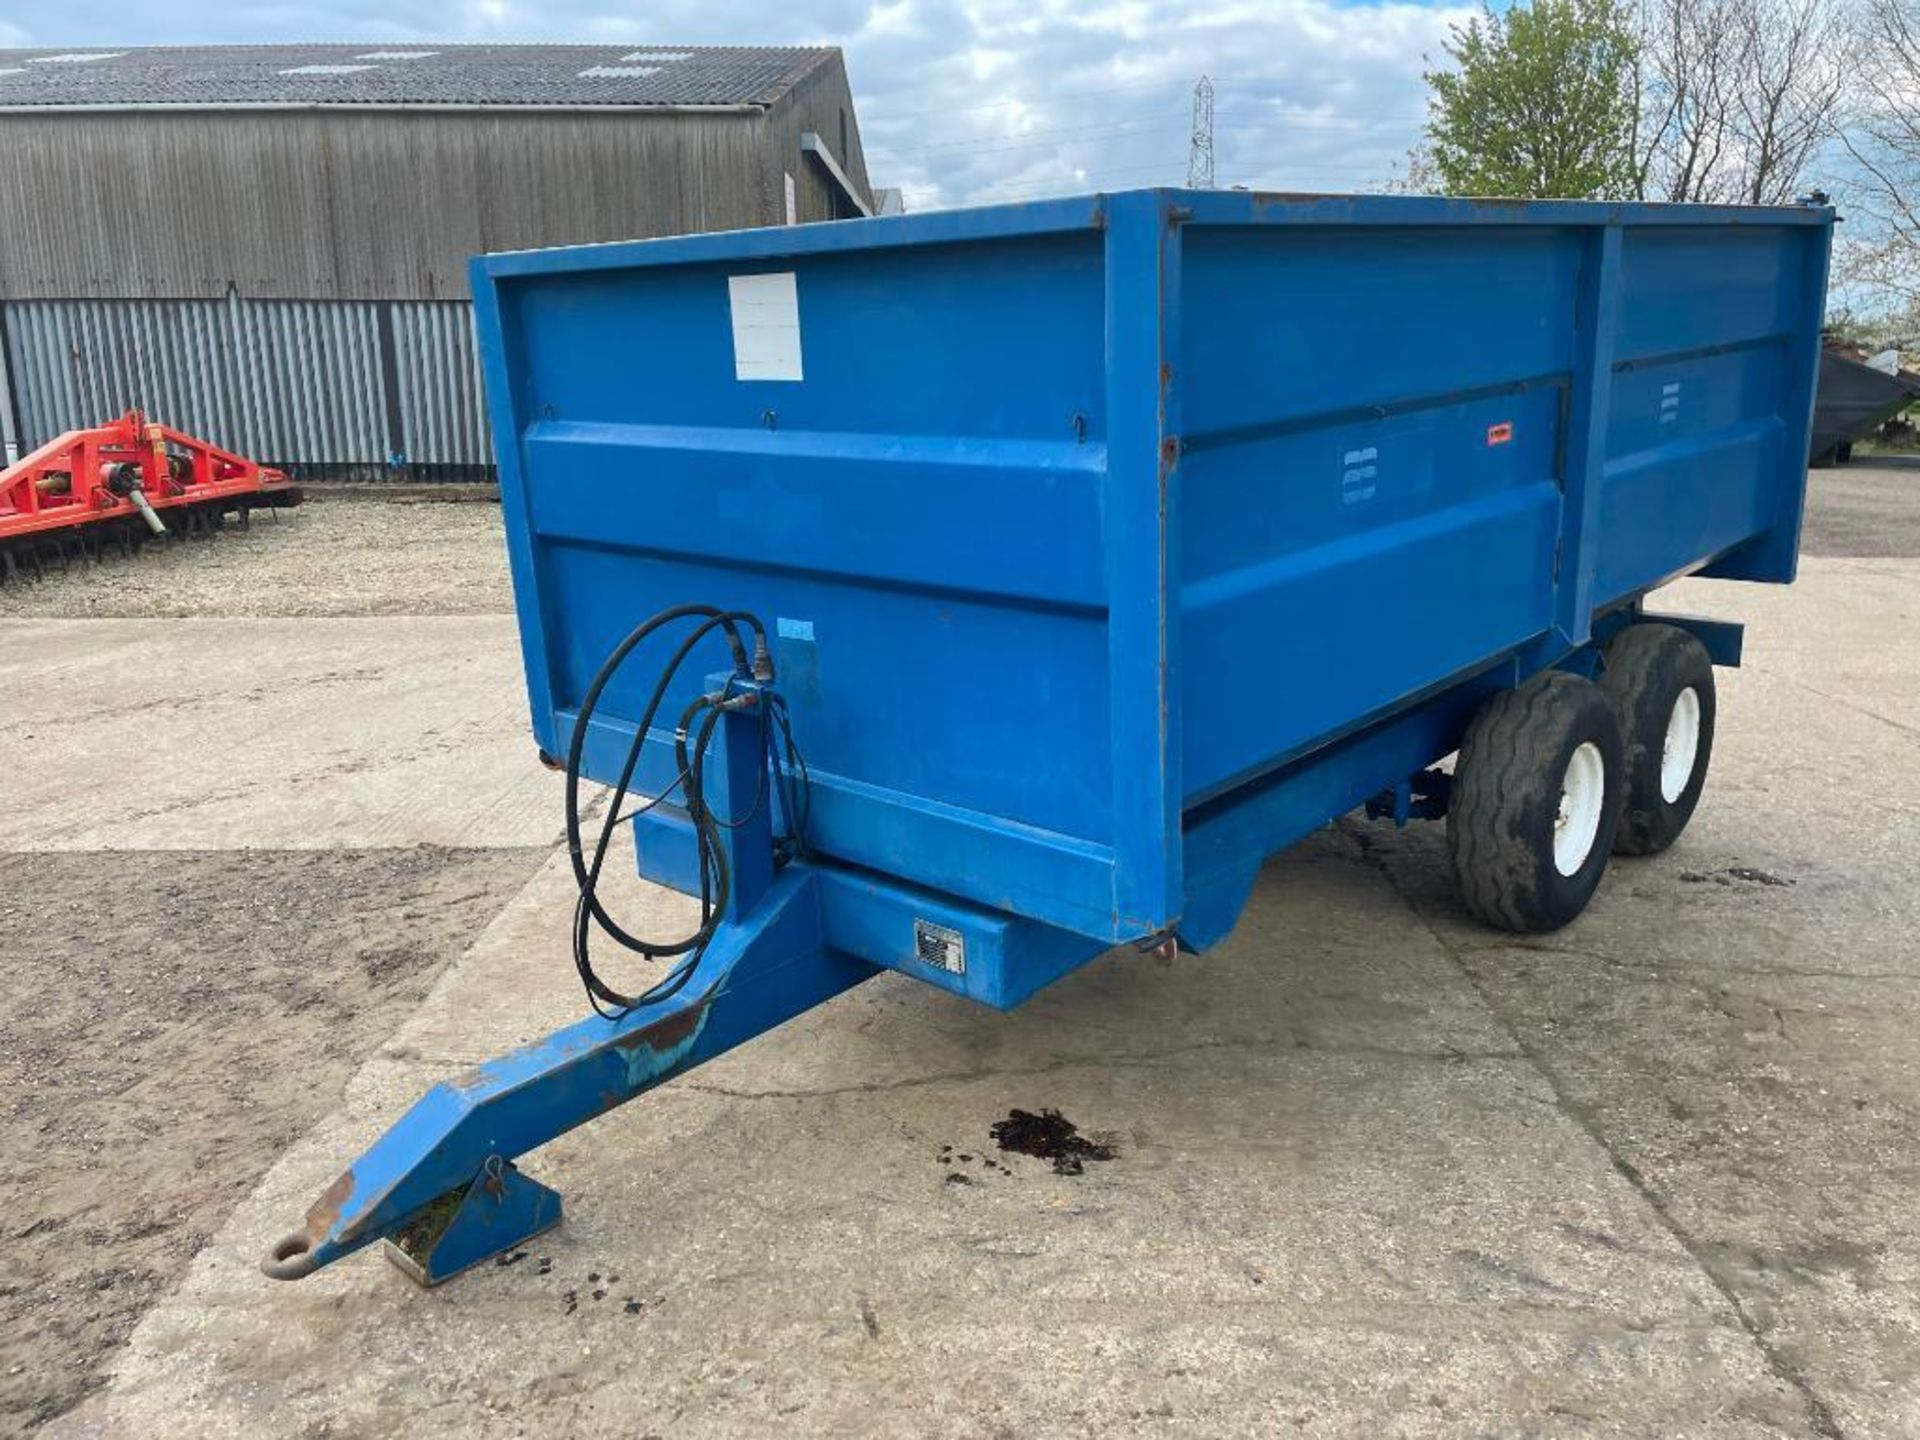 1986 AS Marston 8t twin axle grain trailer, manual tailgate and grain chute on 11.5/80-15.3 wheels a - Image 11 of 15